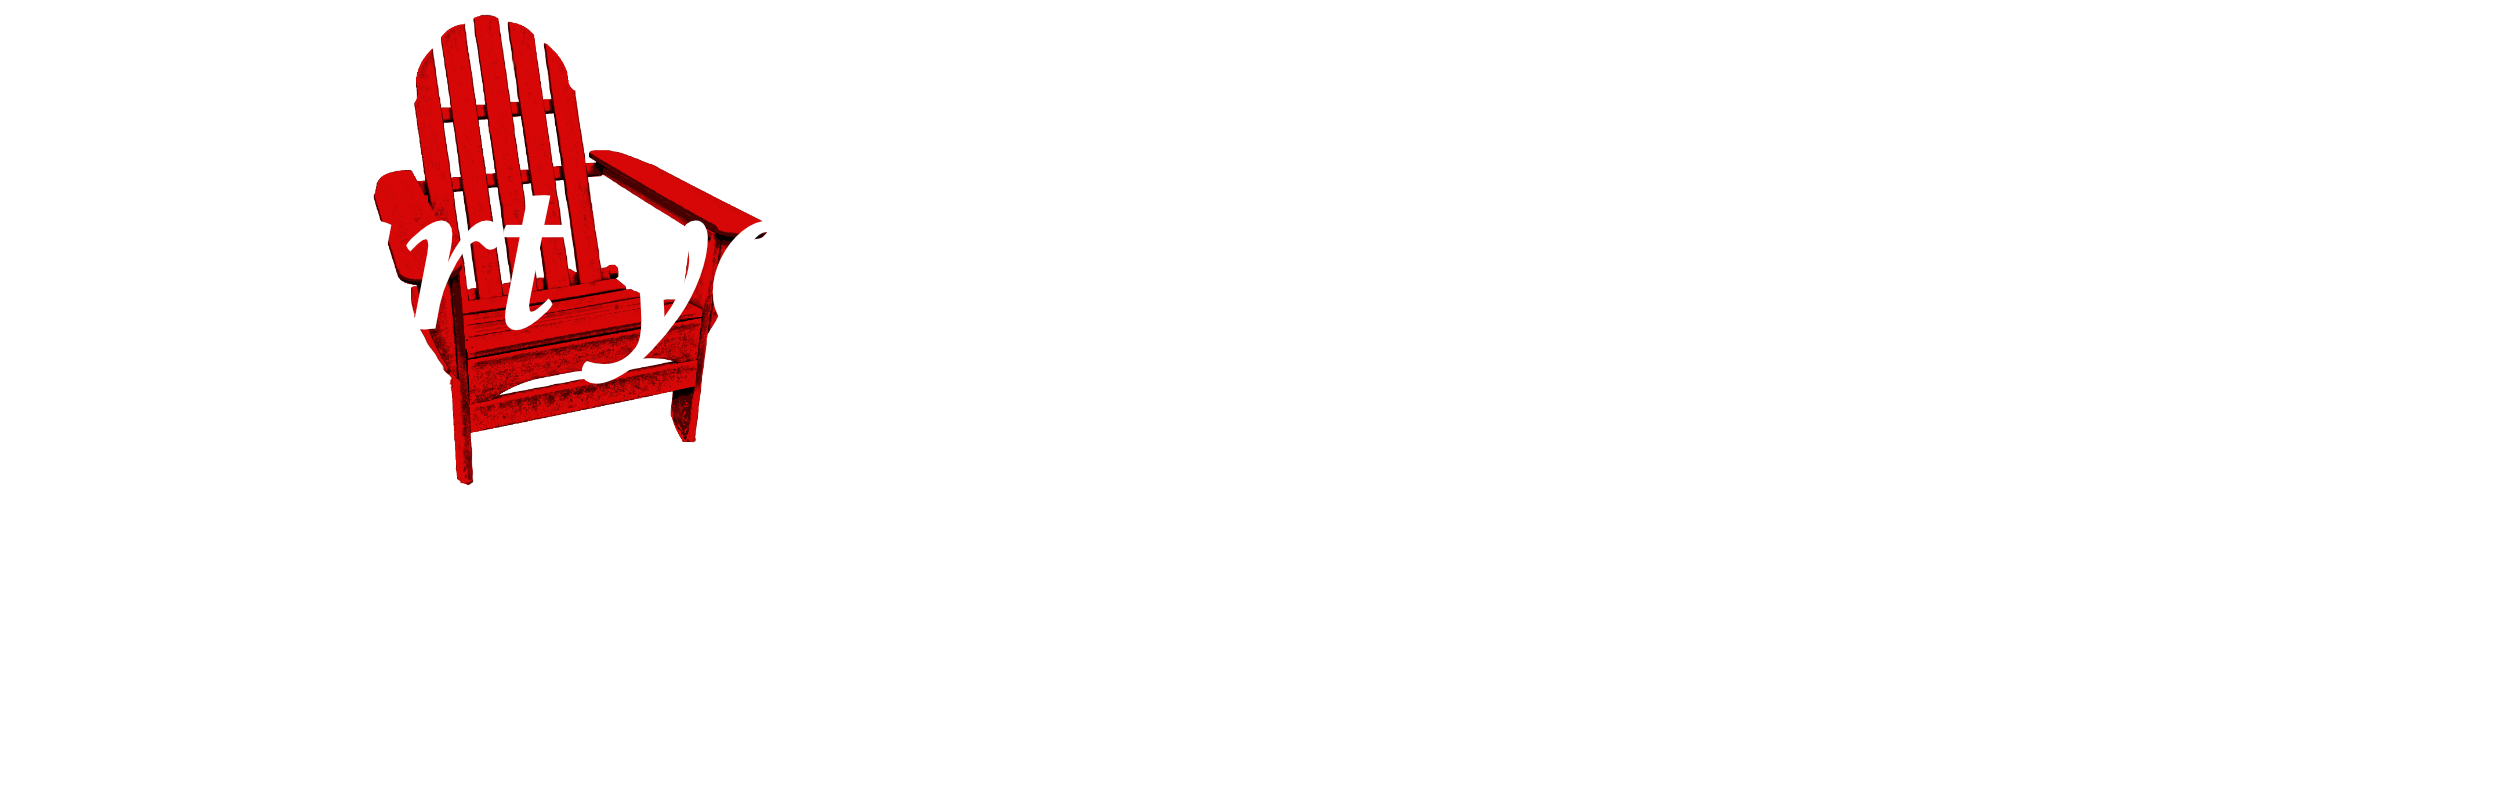 start your journey here 2.png